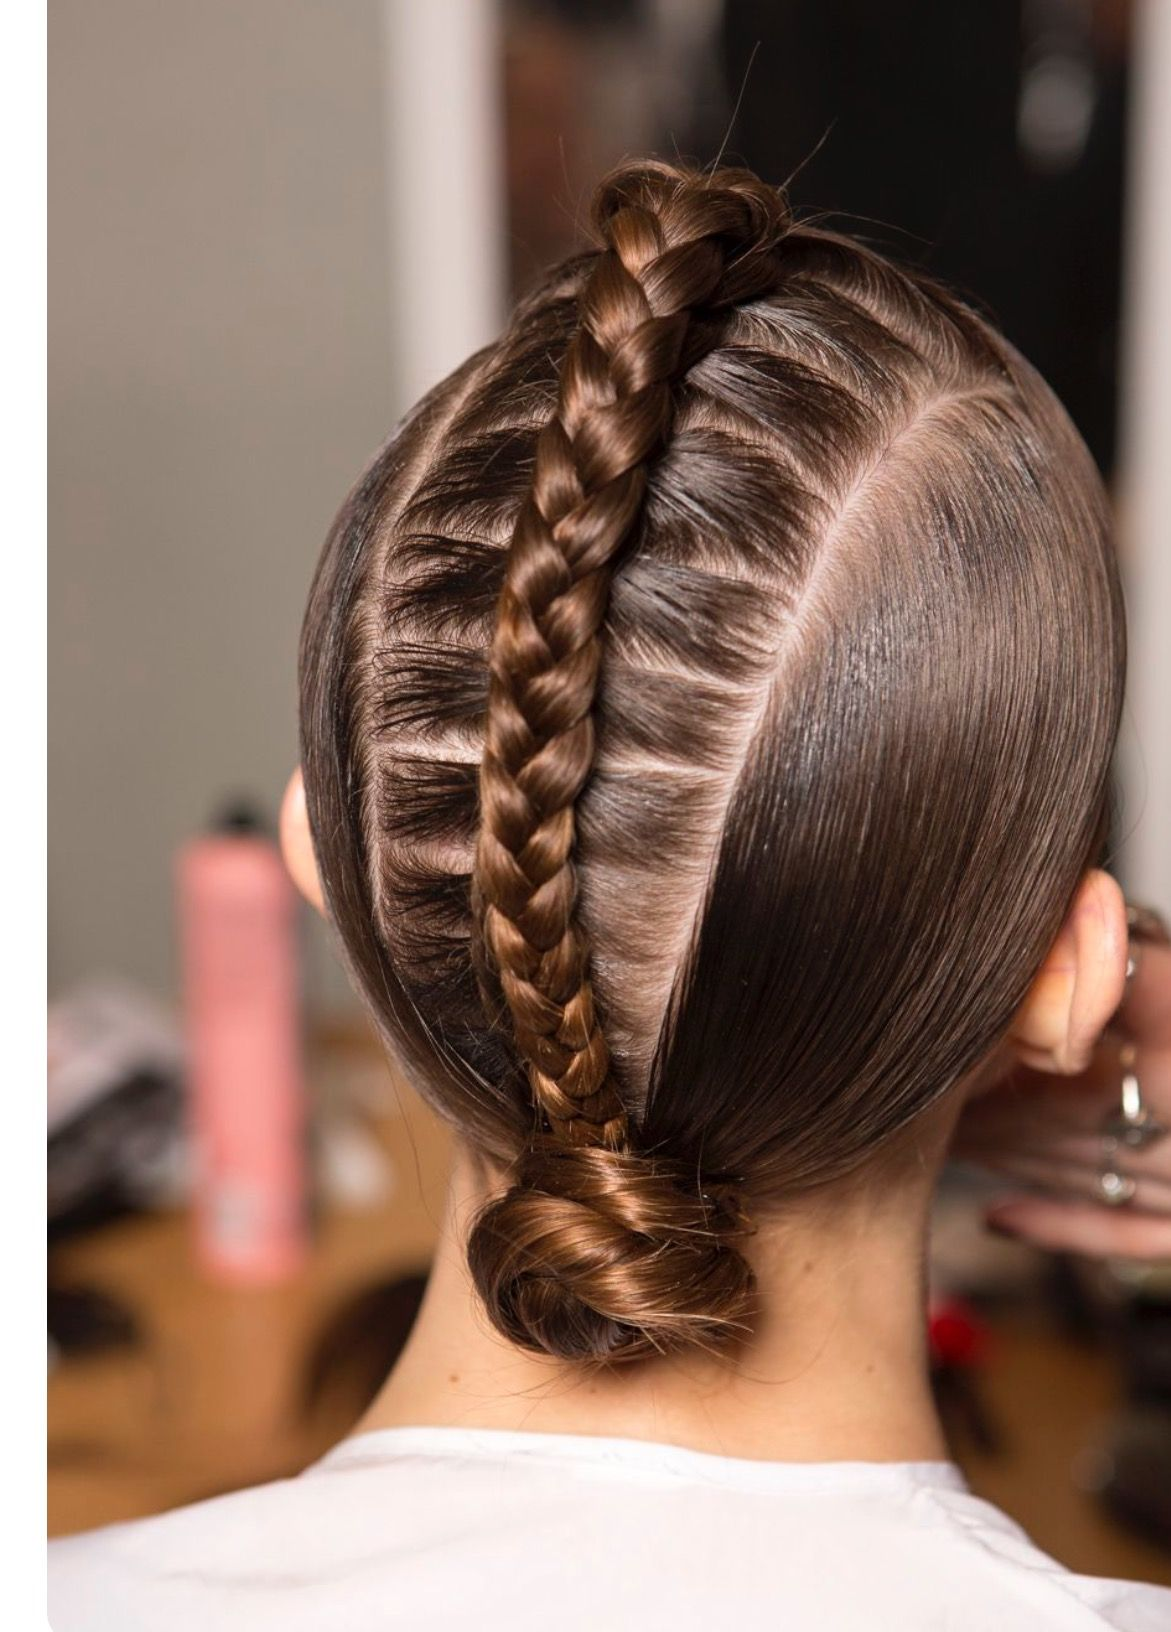 To acquire Braided spring hairstyles inspired from the runway pictures trends